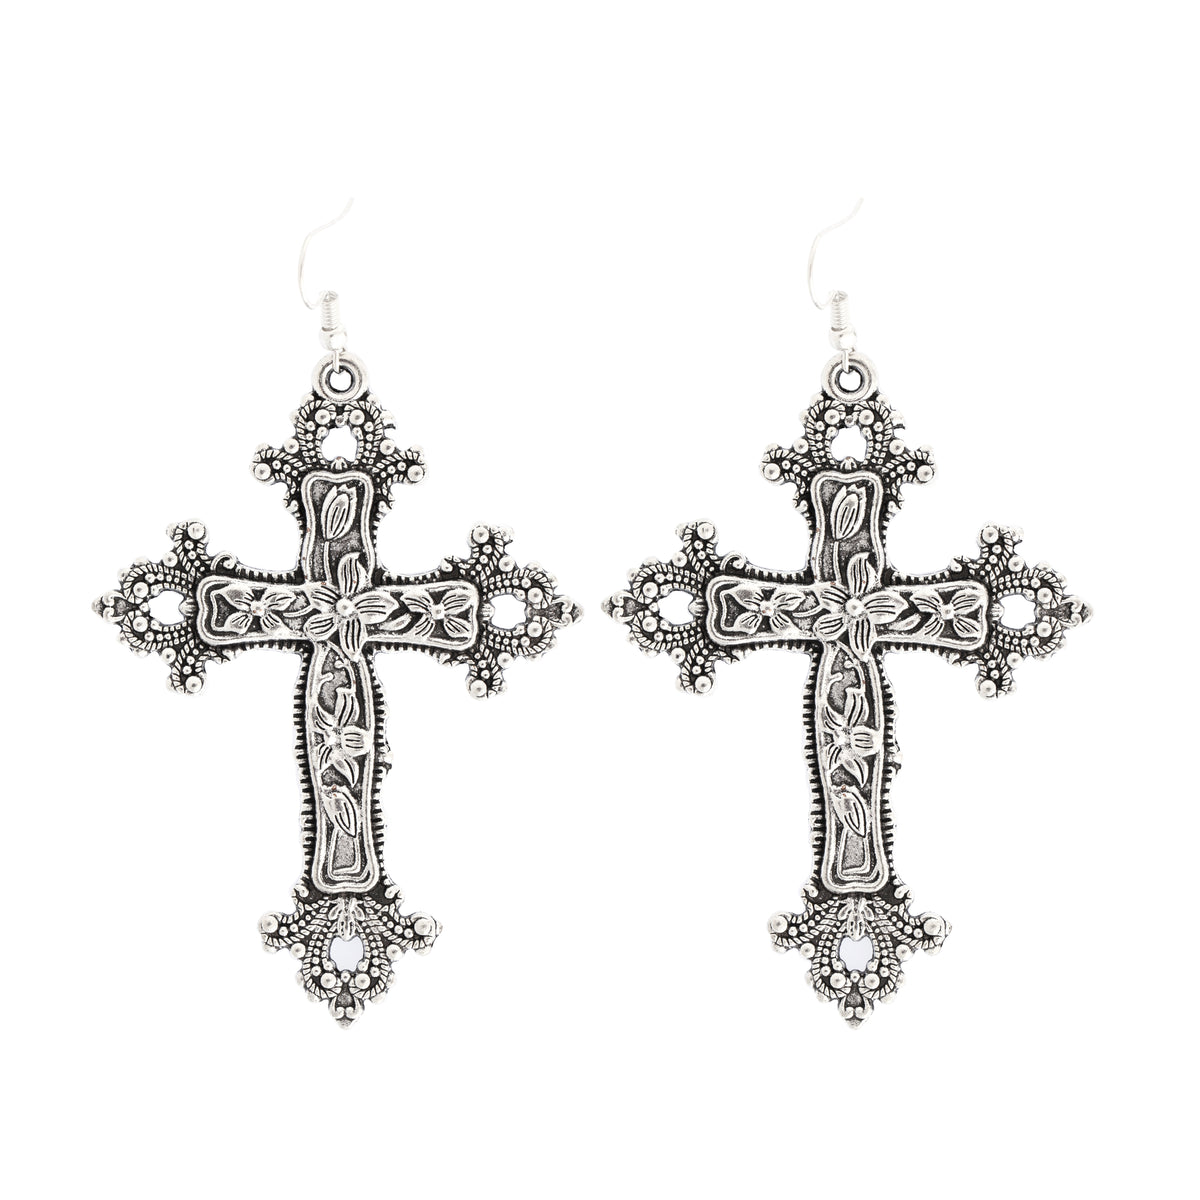 Cross earrings (pair) DB5443